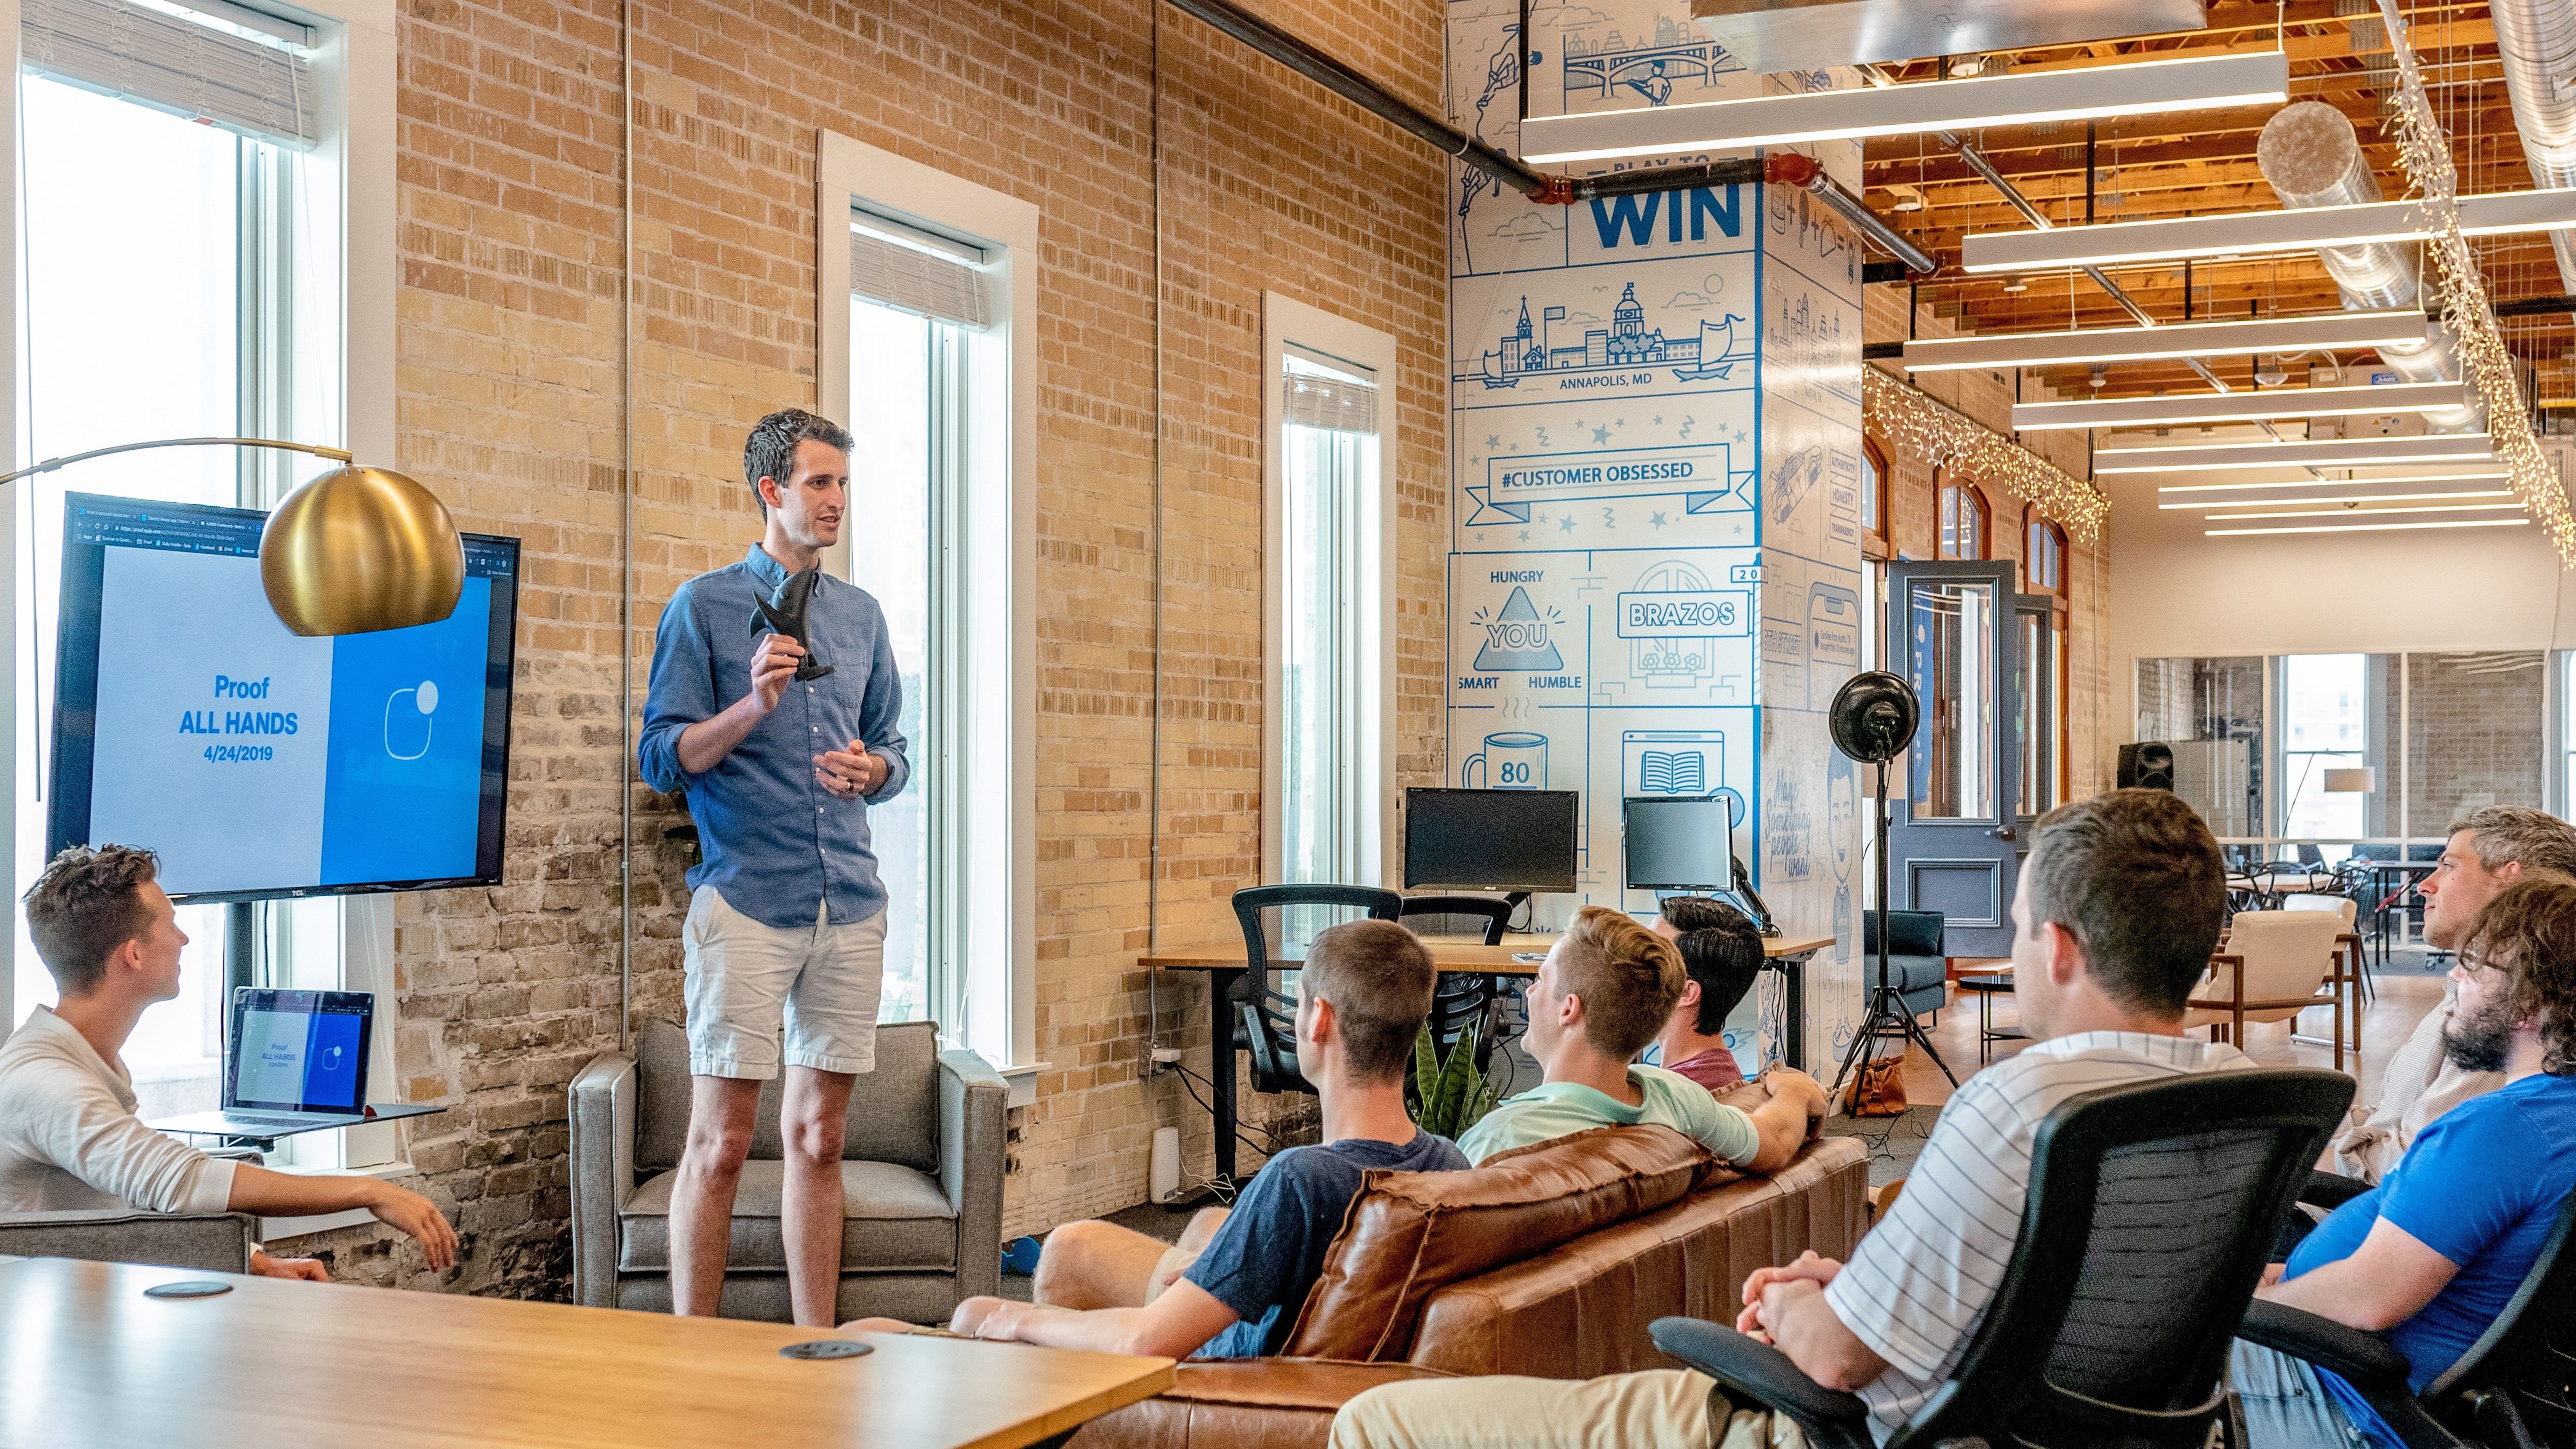 The culture of more: becoming a values-led company